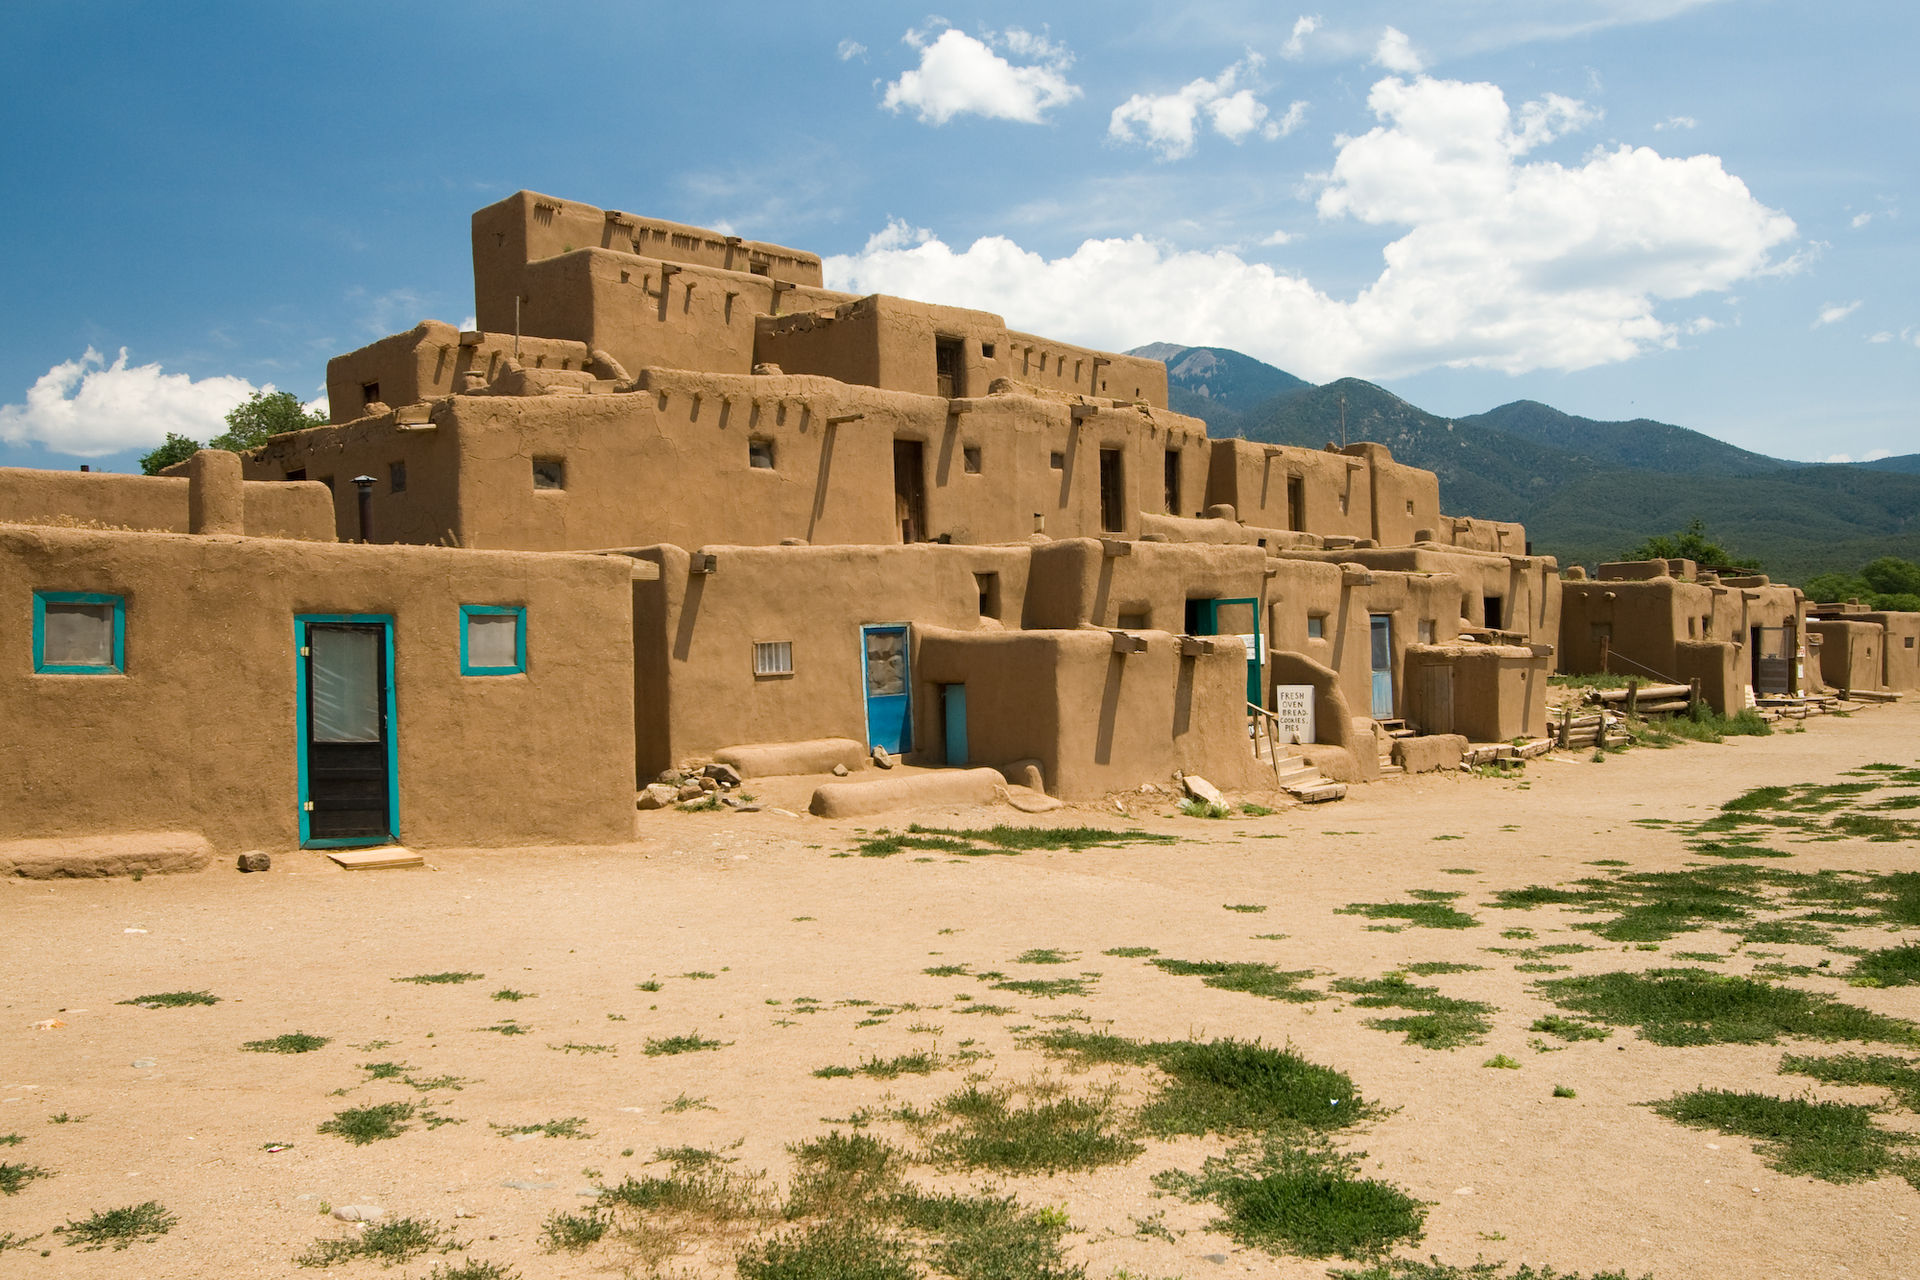 Taos Pueblo, one of the centers of the revolt (photo by Luca Galuzzi)